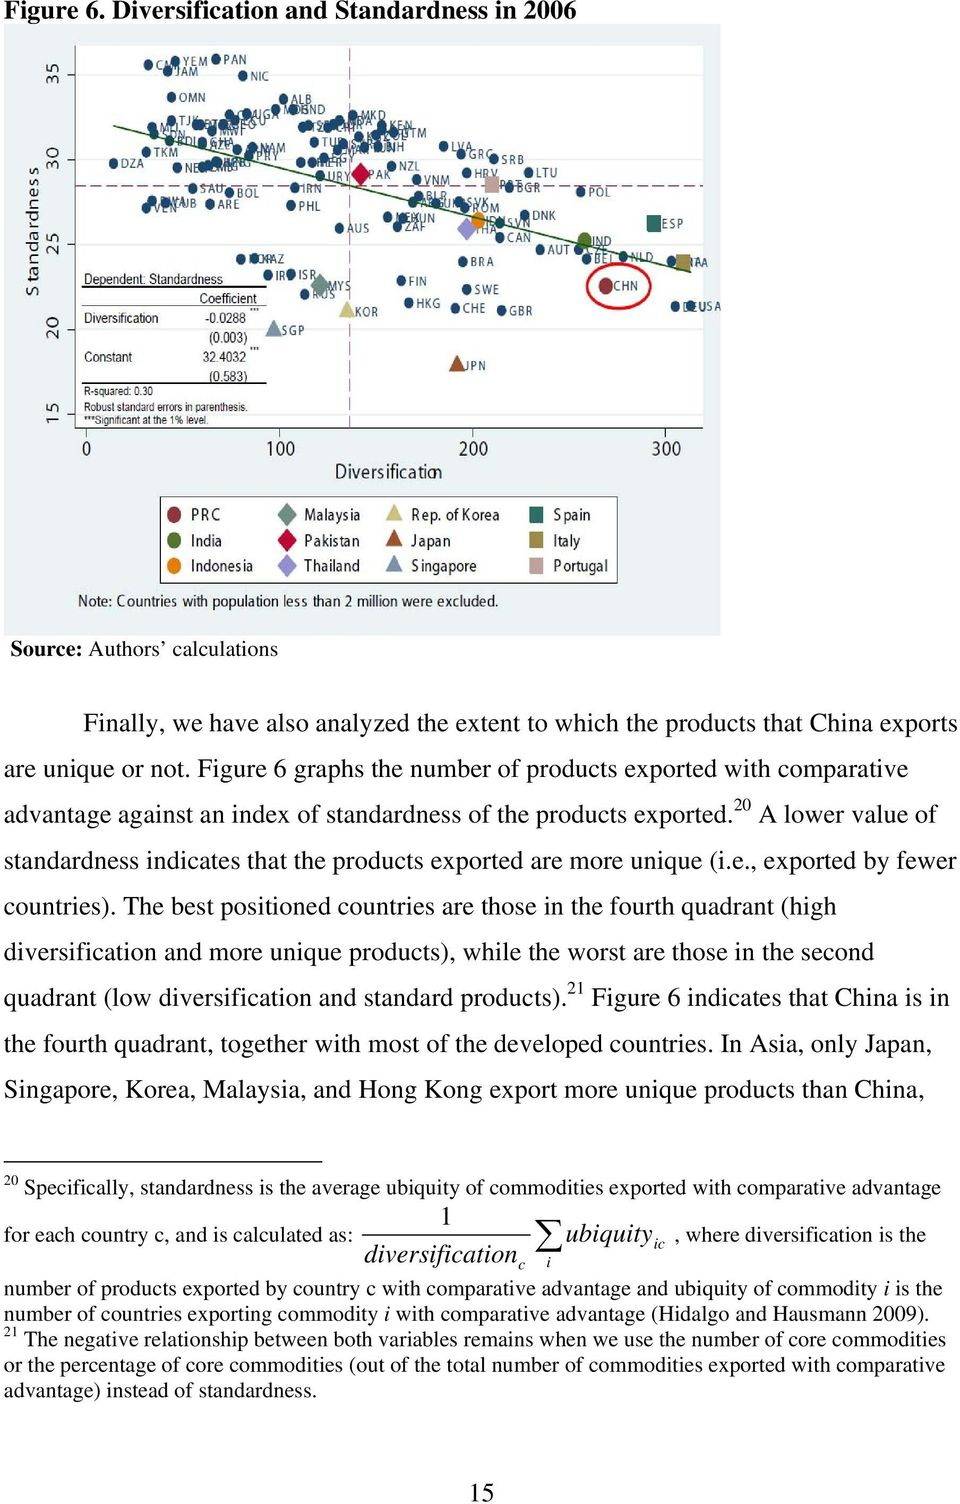 20 A lower value of standardness indicates that the products exported are more unique (i.e., exported by fewer countries).